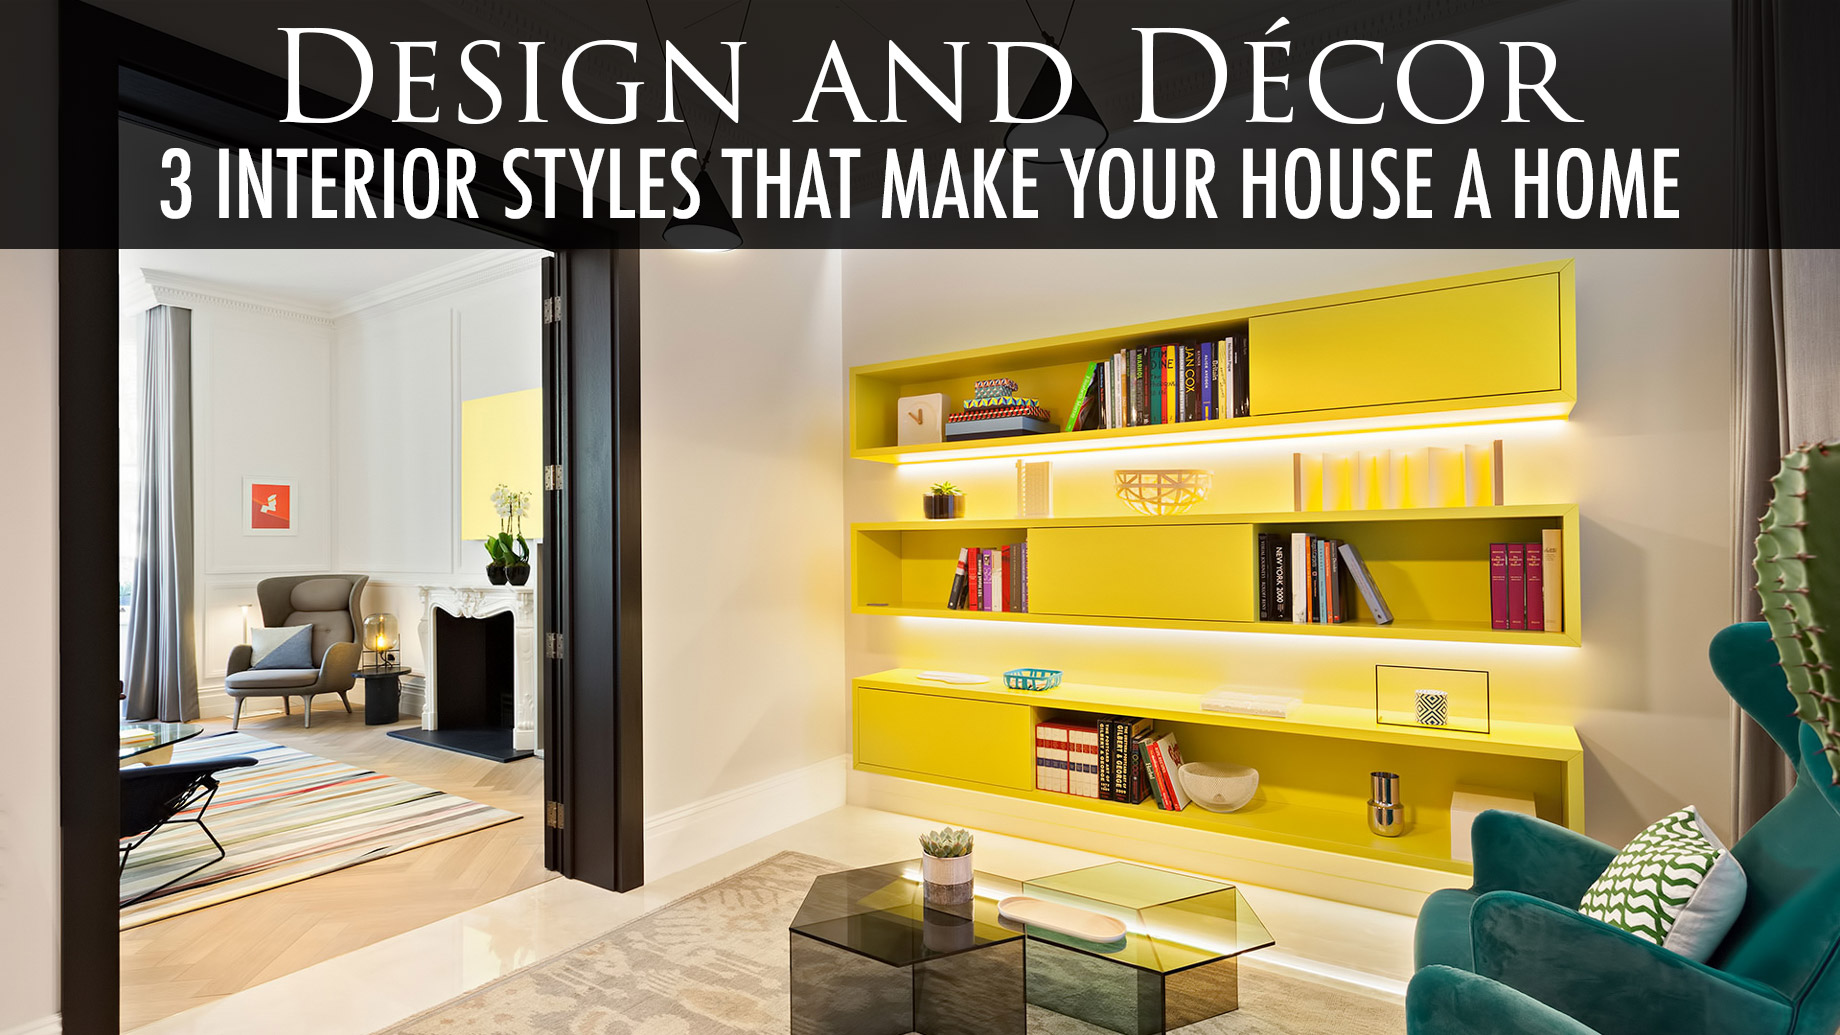 Design and Décor - 3 Interior Styles That Make Your House a Home